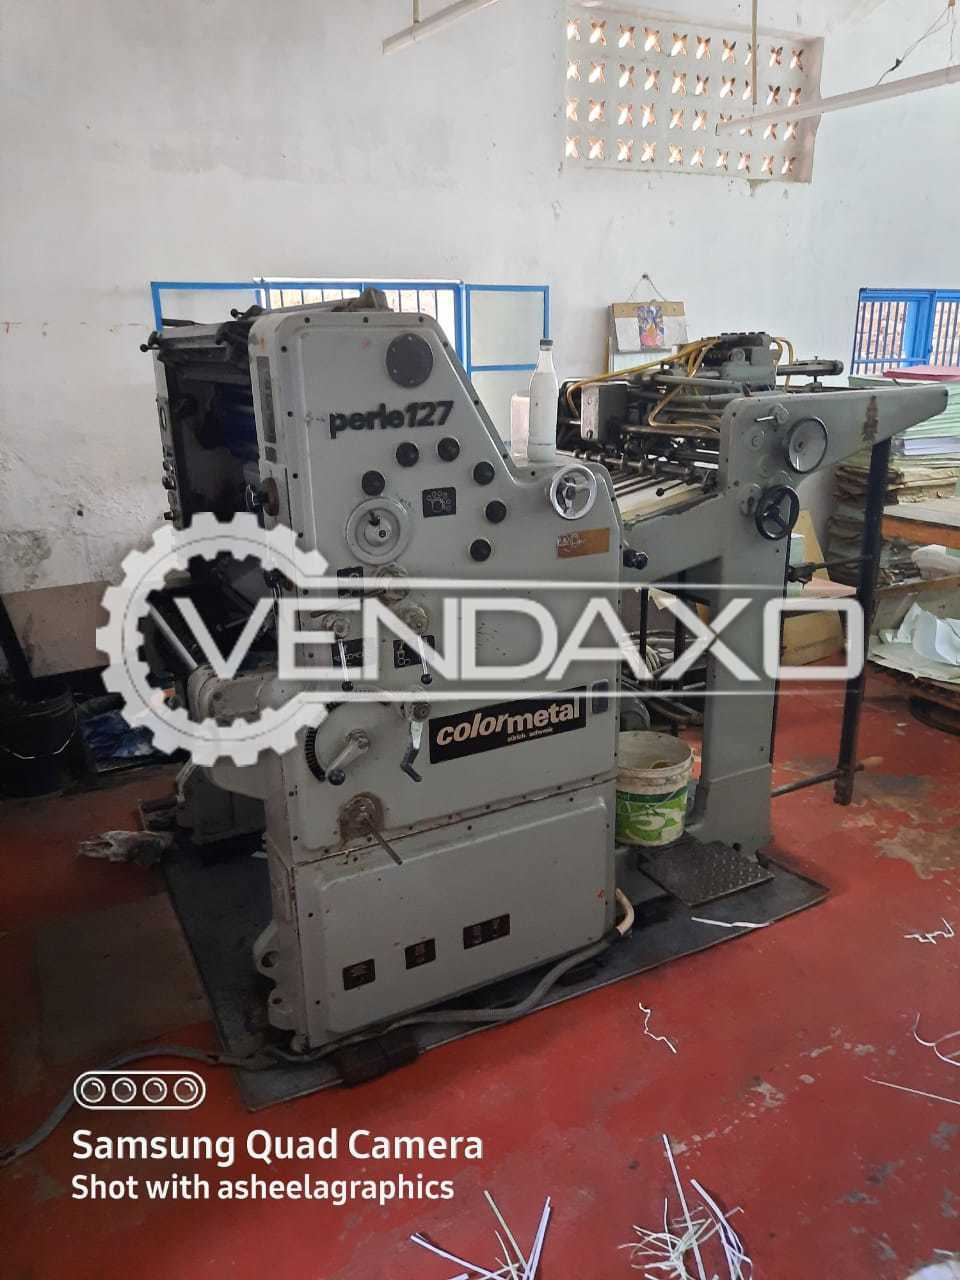 Colormetal Perle 127 Offset Printing Machine - 20 X 30 Inch, Single Color